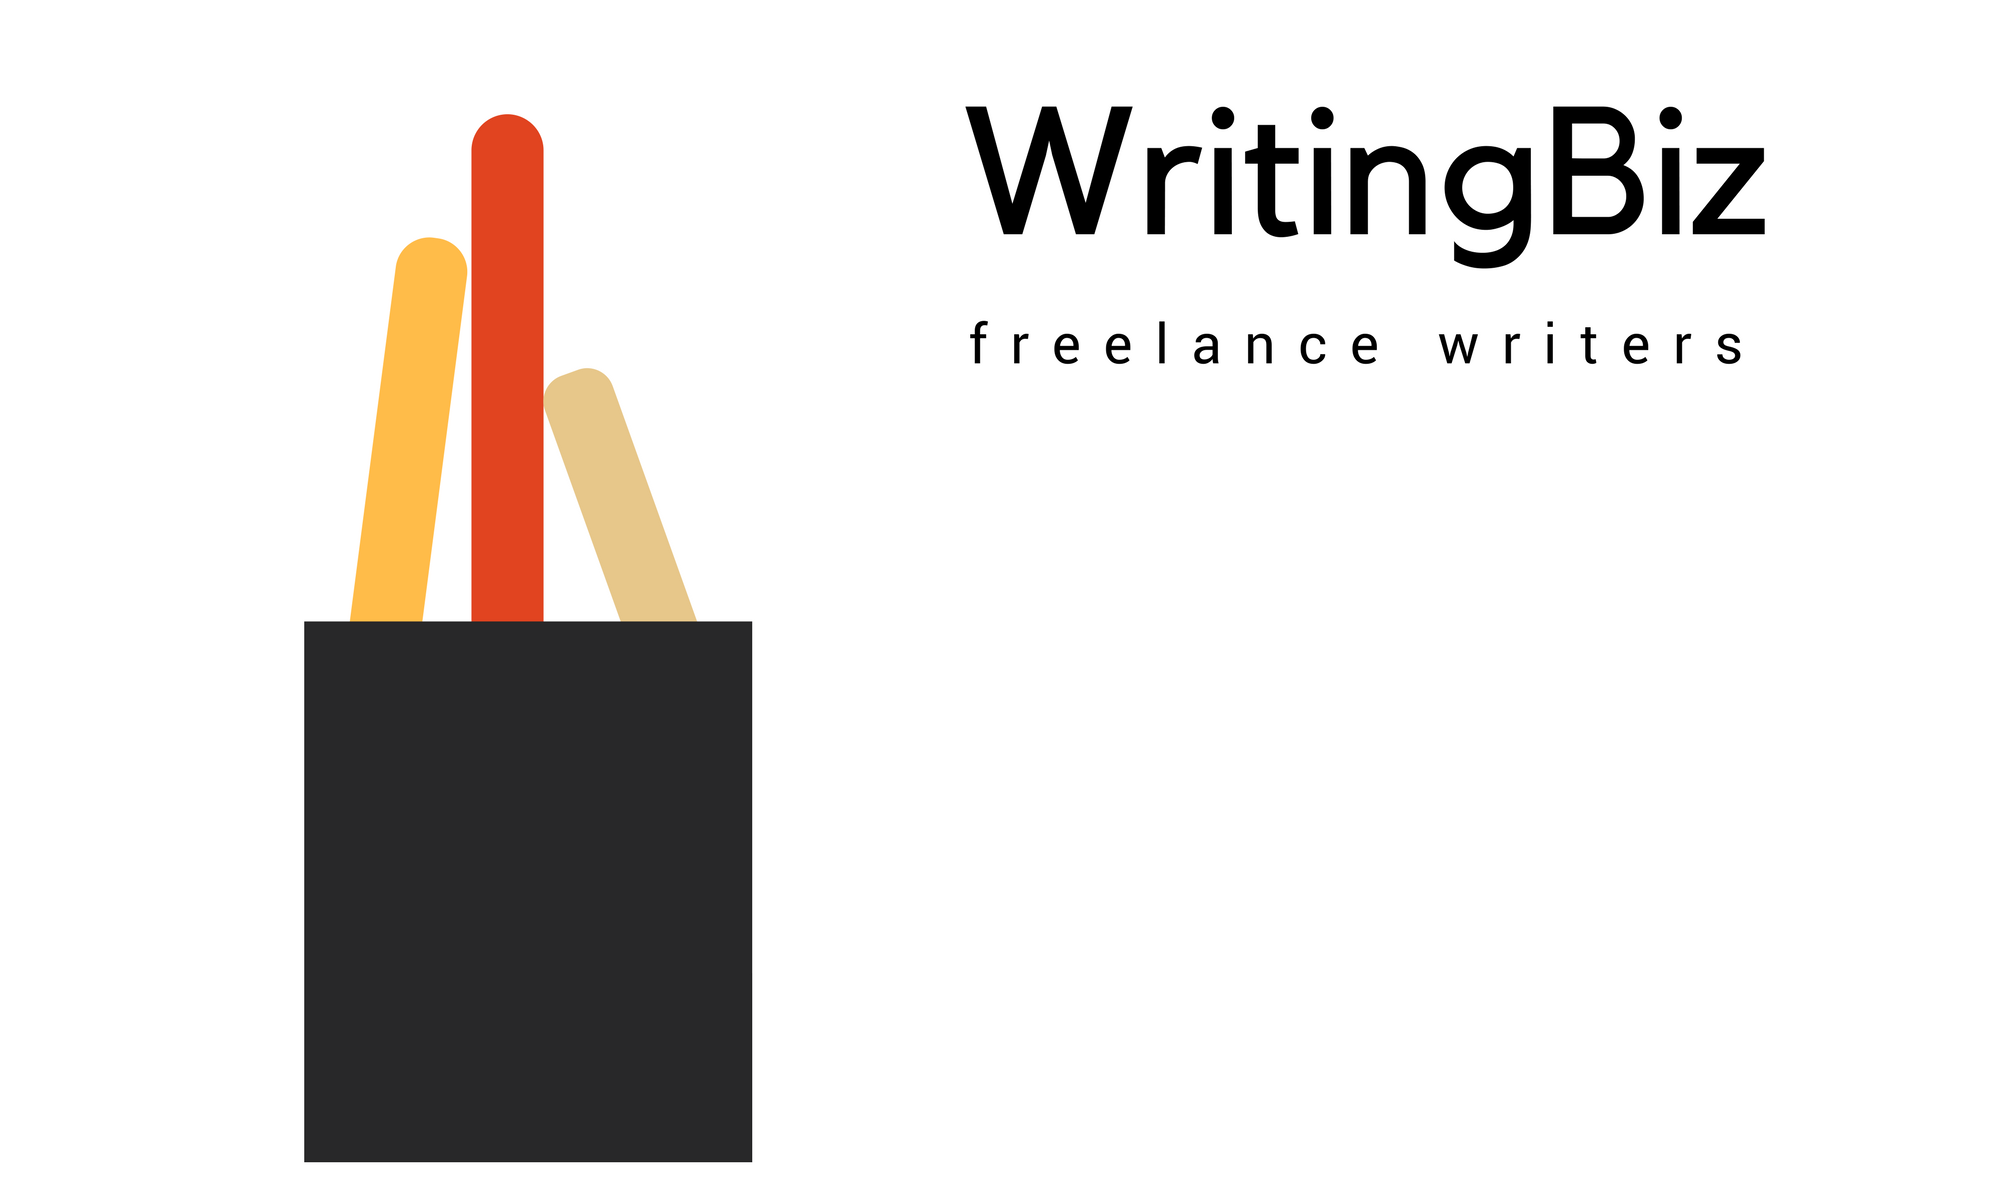 WritingBiz - Make money writing - freelance writers